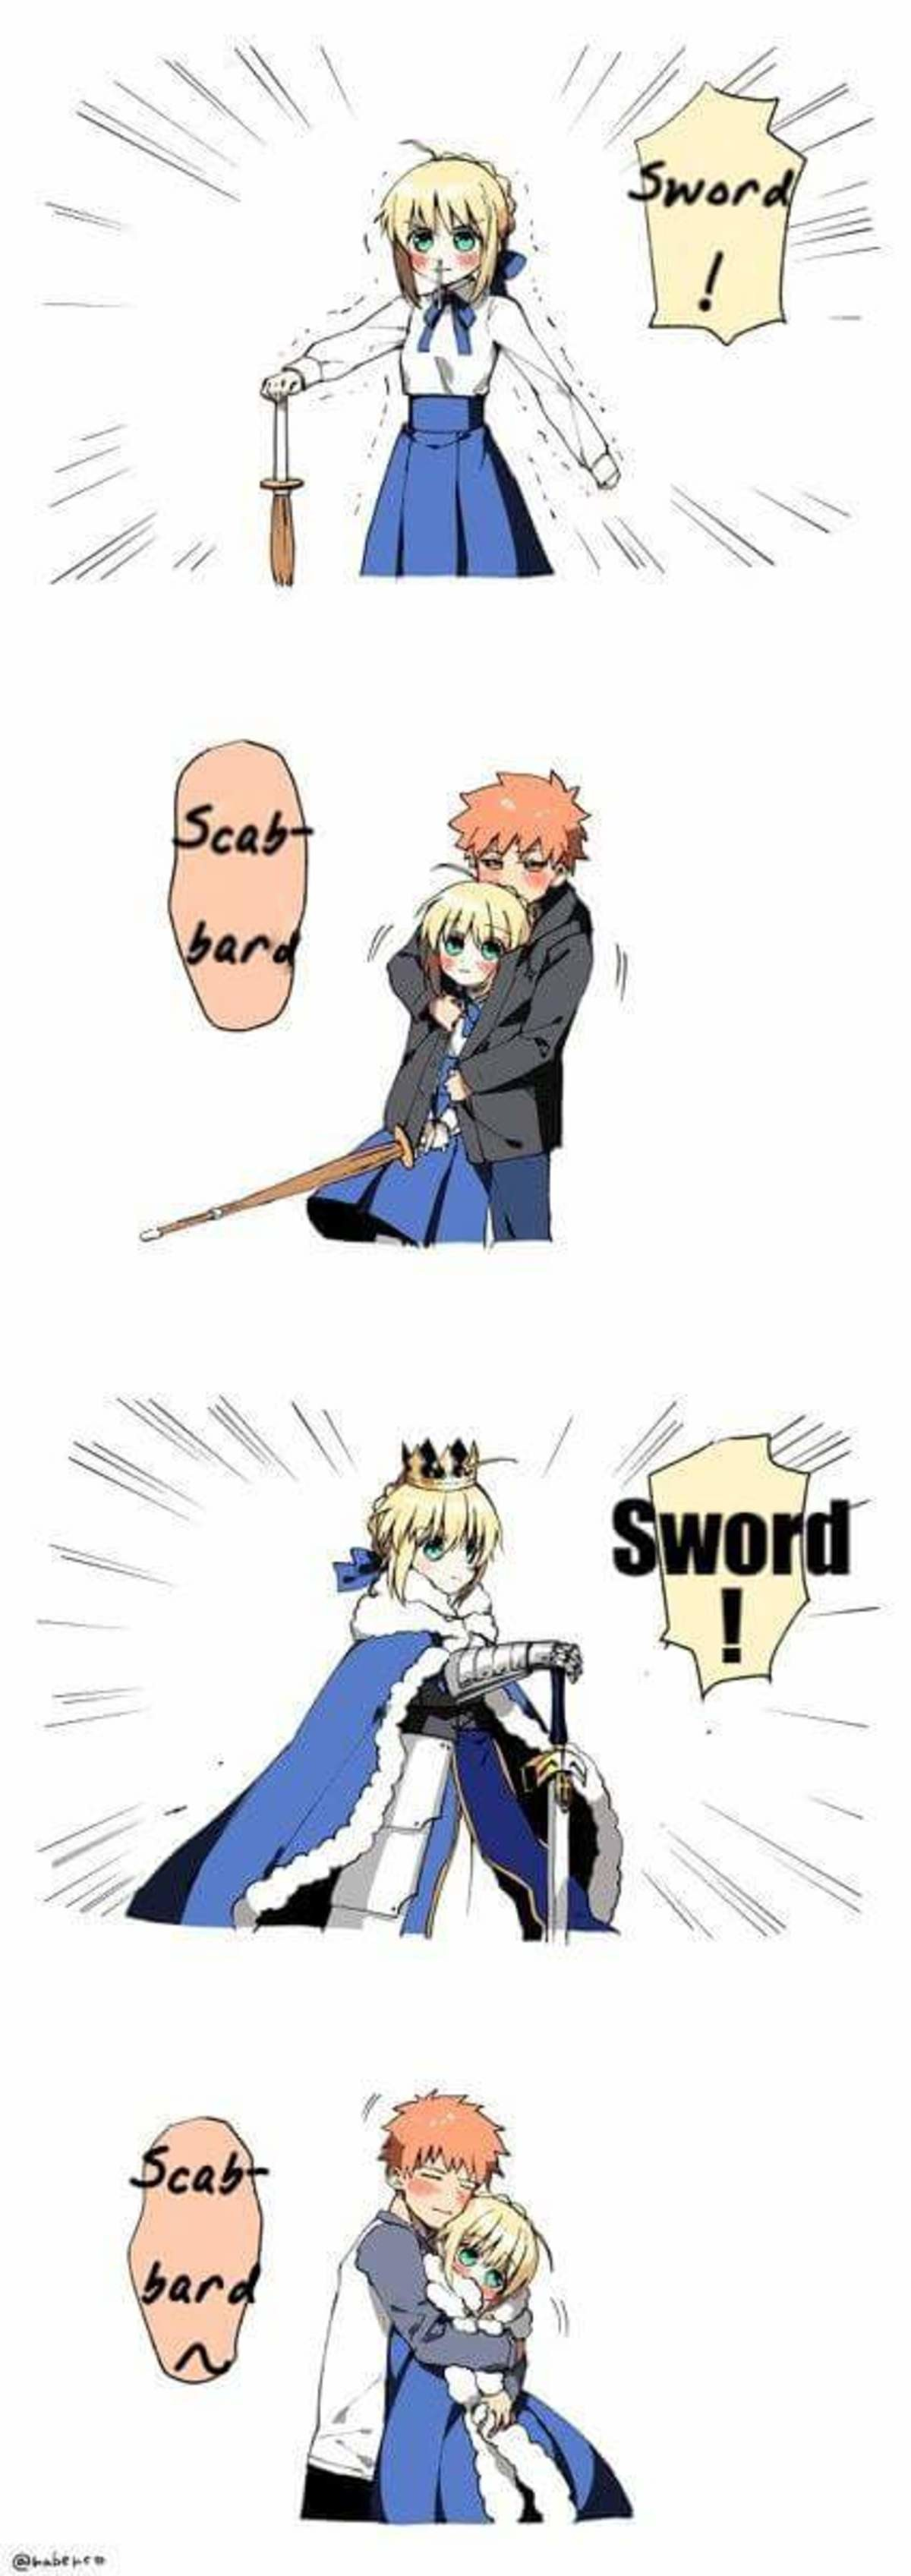 Sword In The Scabbard. join list: SmolHol (1464 subs)Mention History join list:. He should sheath his meat blade insider her tight meat scabbard~ Thanks garlicbutts~ join list: ThatStraightSheeitMention History